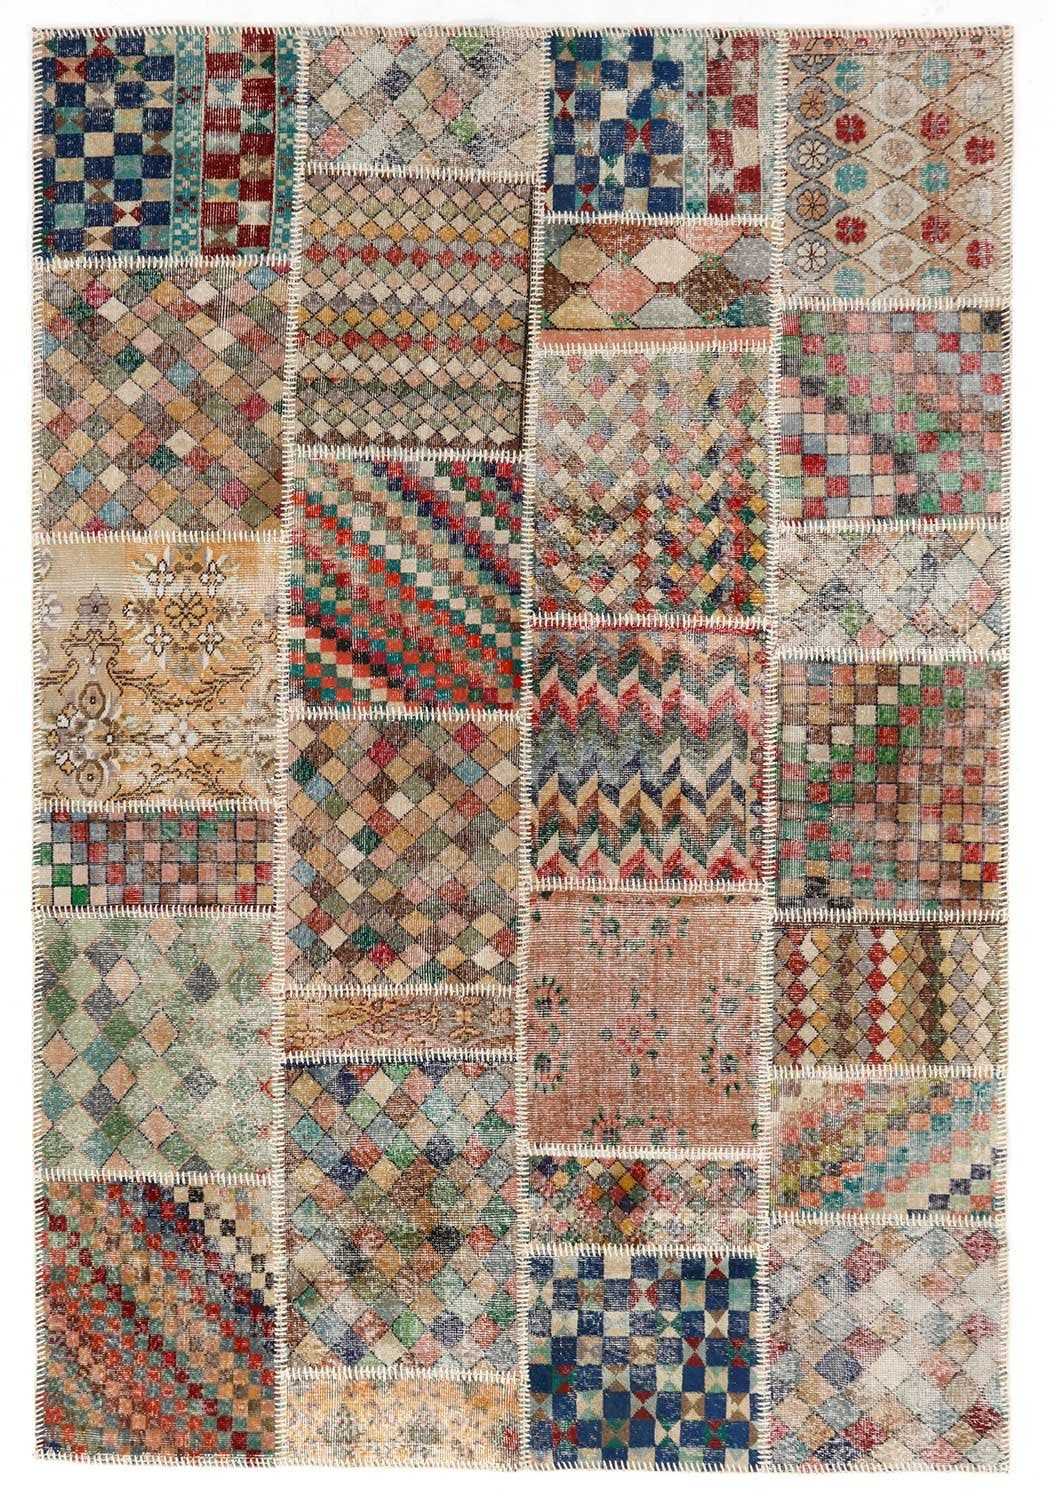 Varicolored Geometric Pattern Patchwork Rug Small Size Multicolor